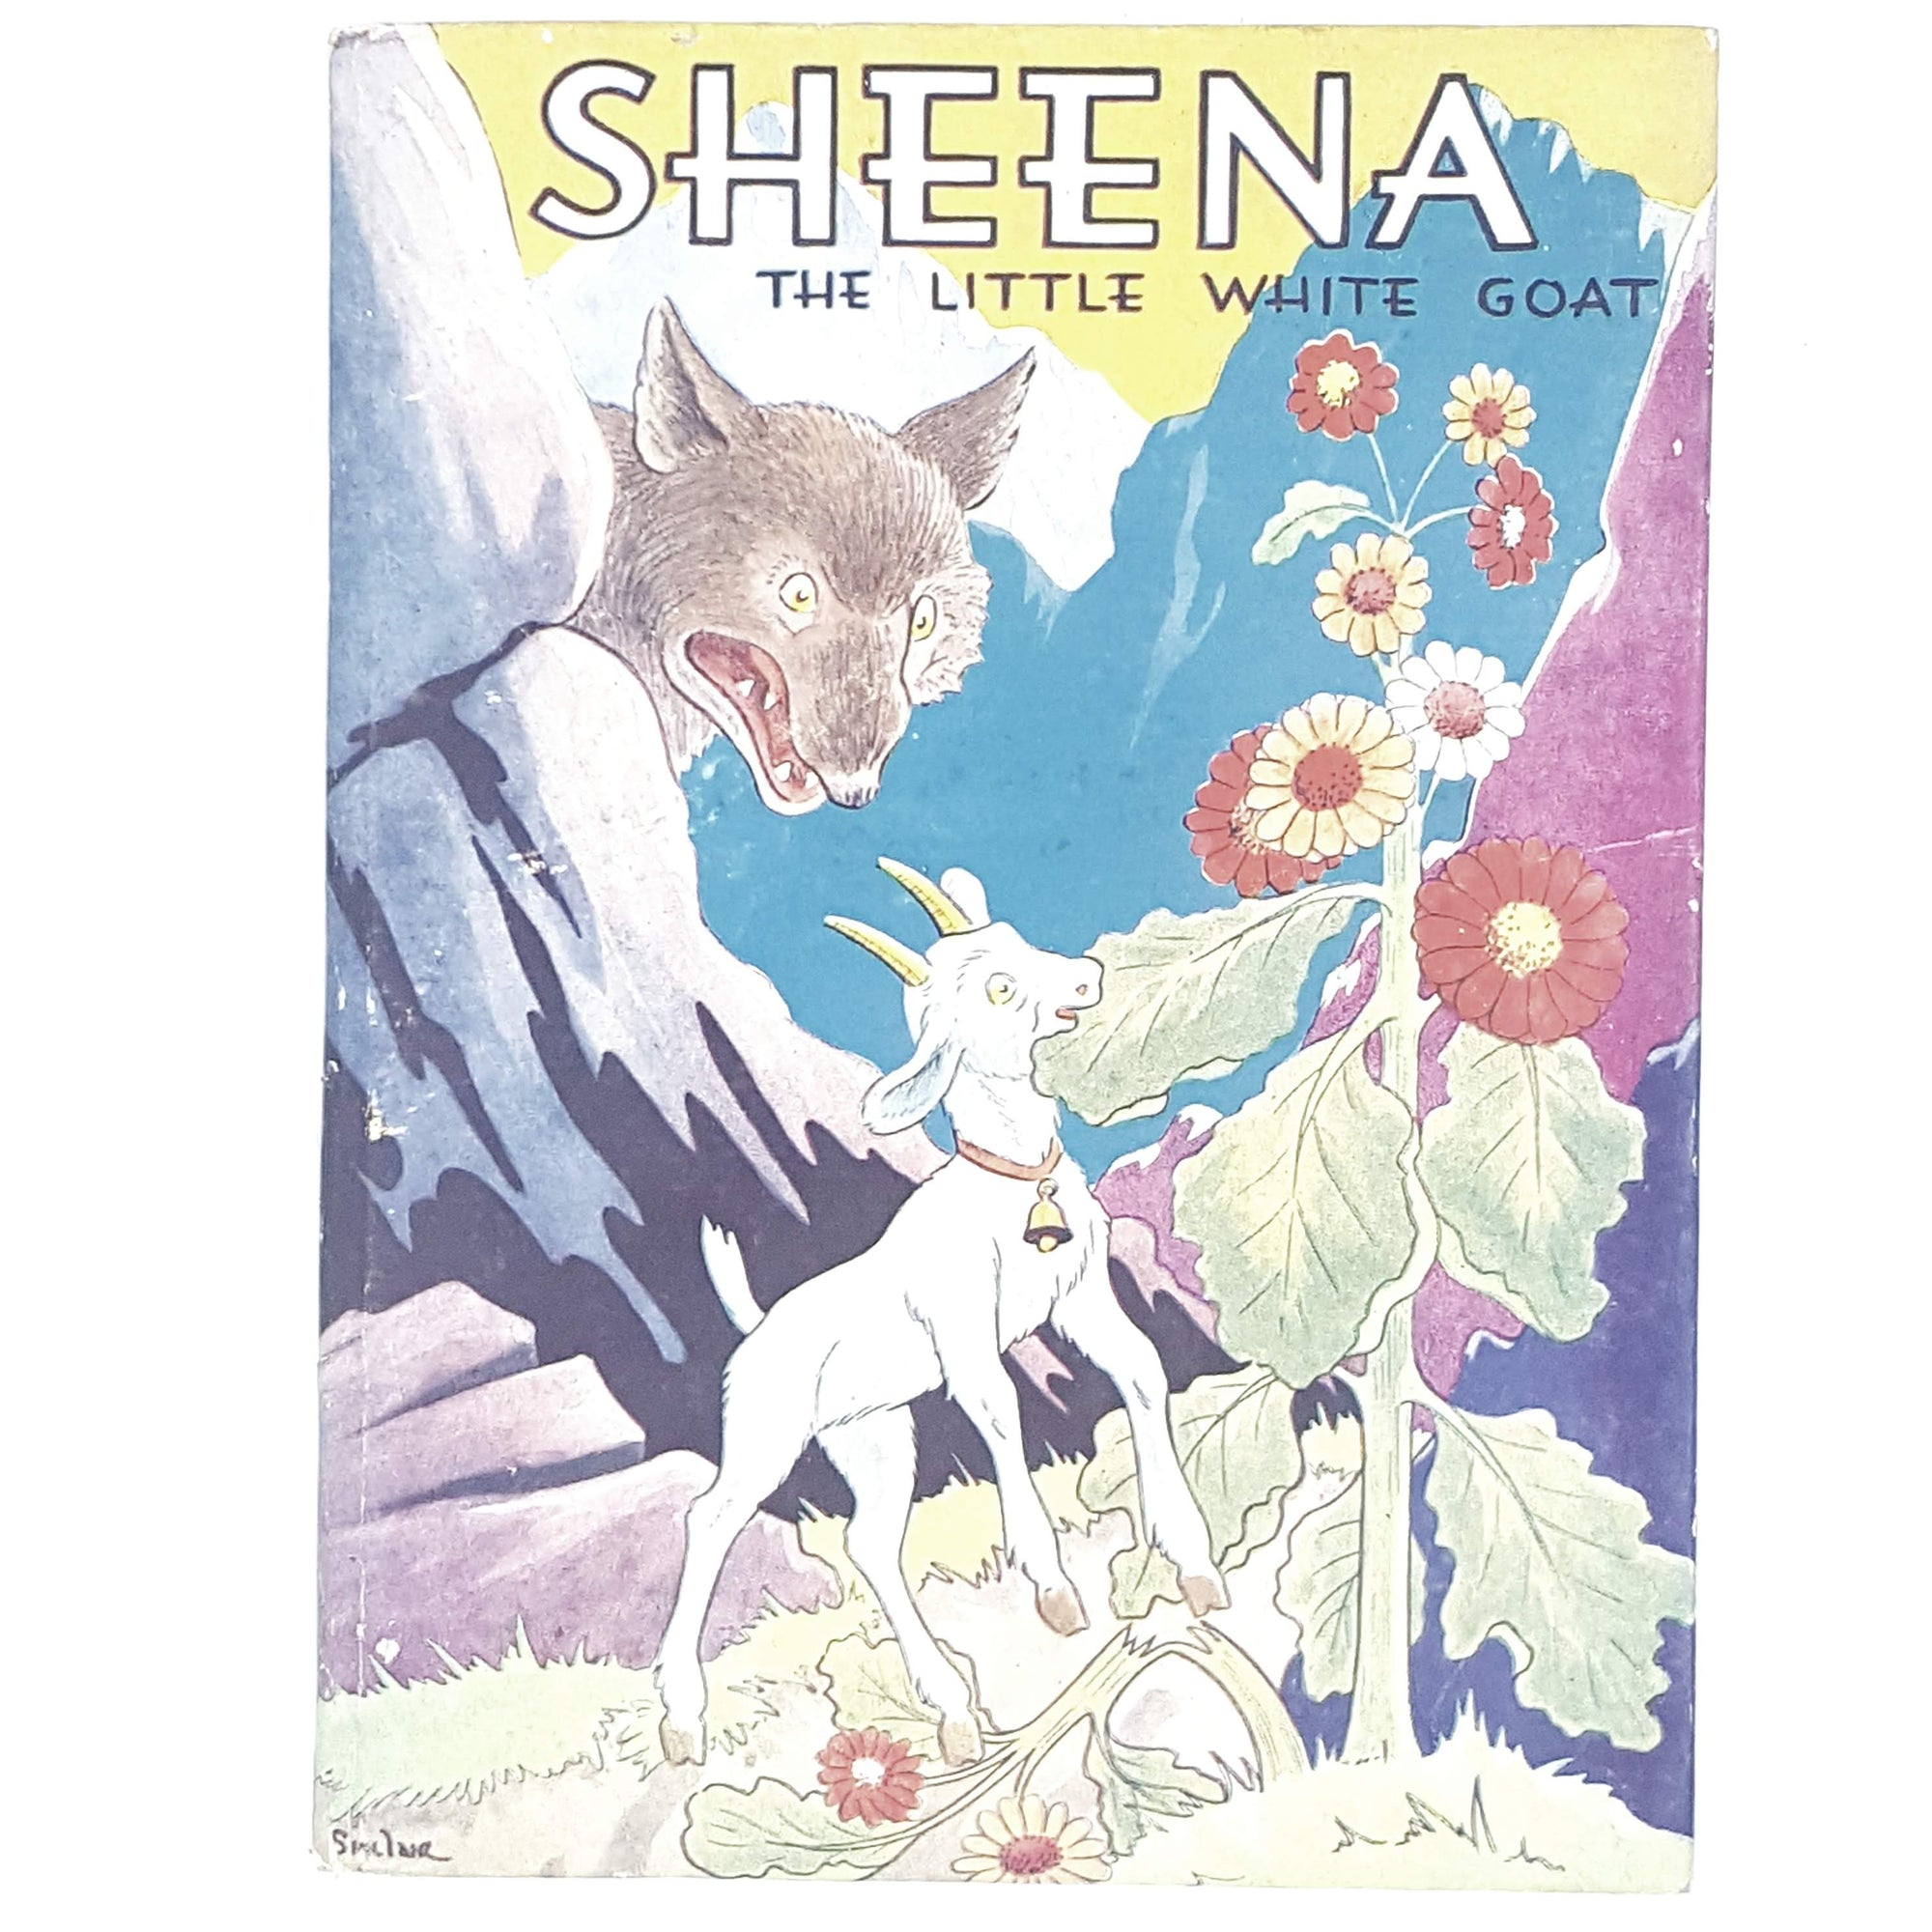 Sheena the Little White Goat by Patrick Sinclairr